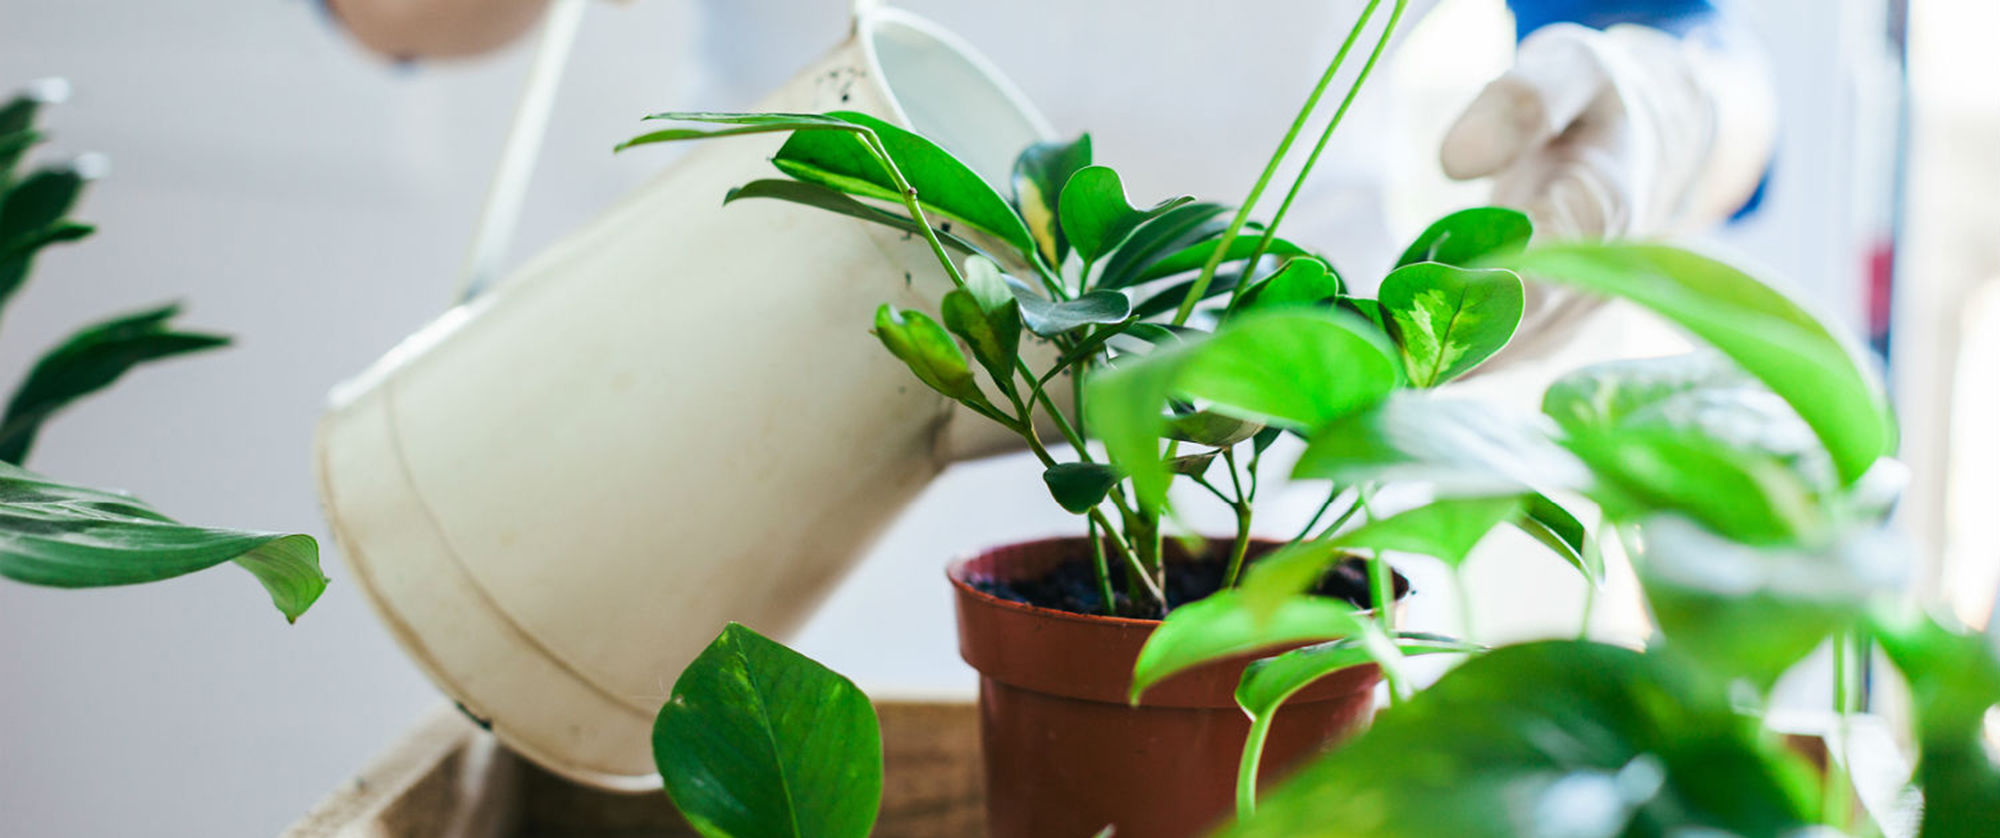 prevent-houseplant-mold